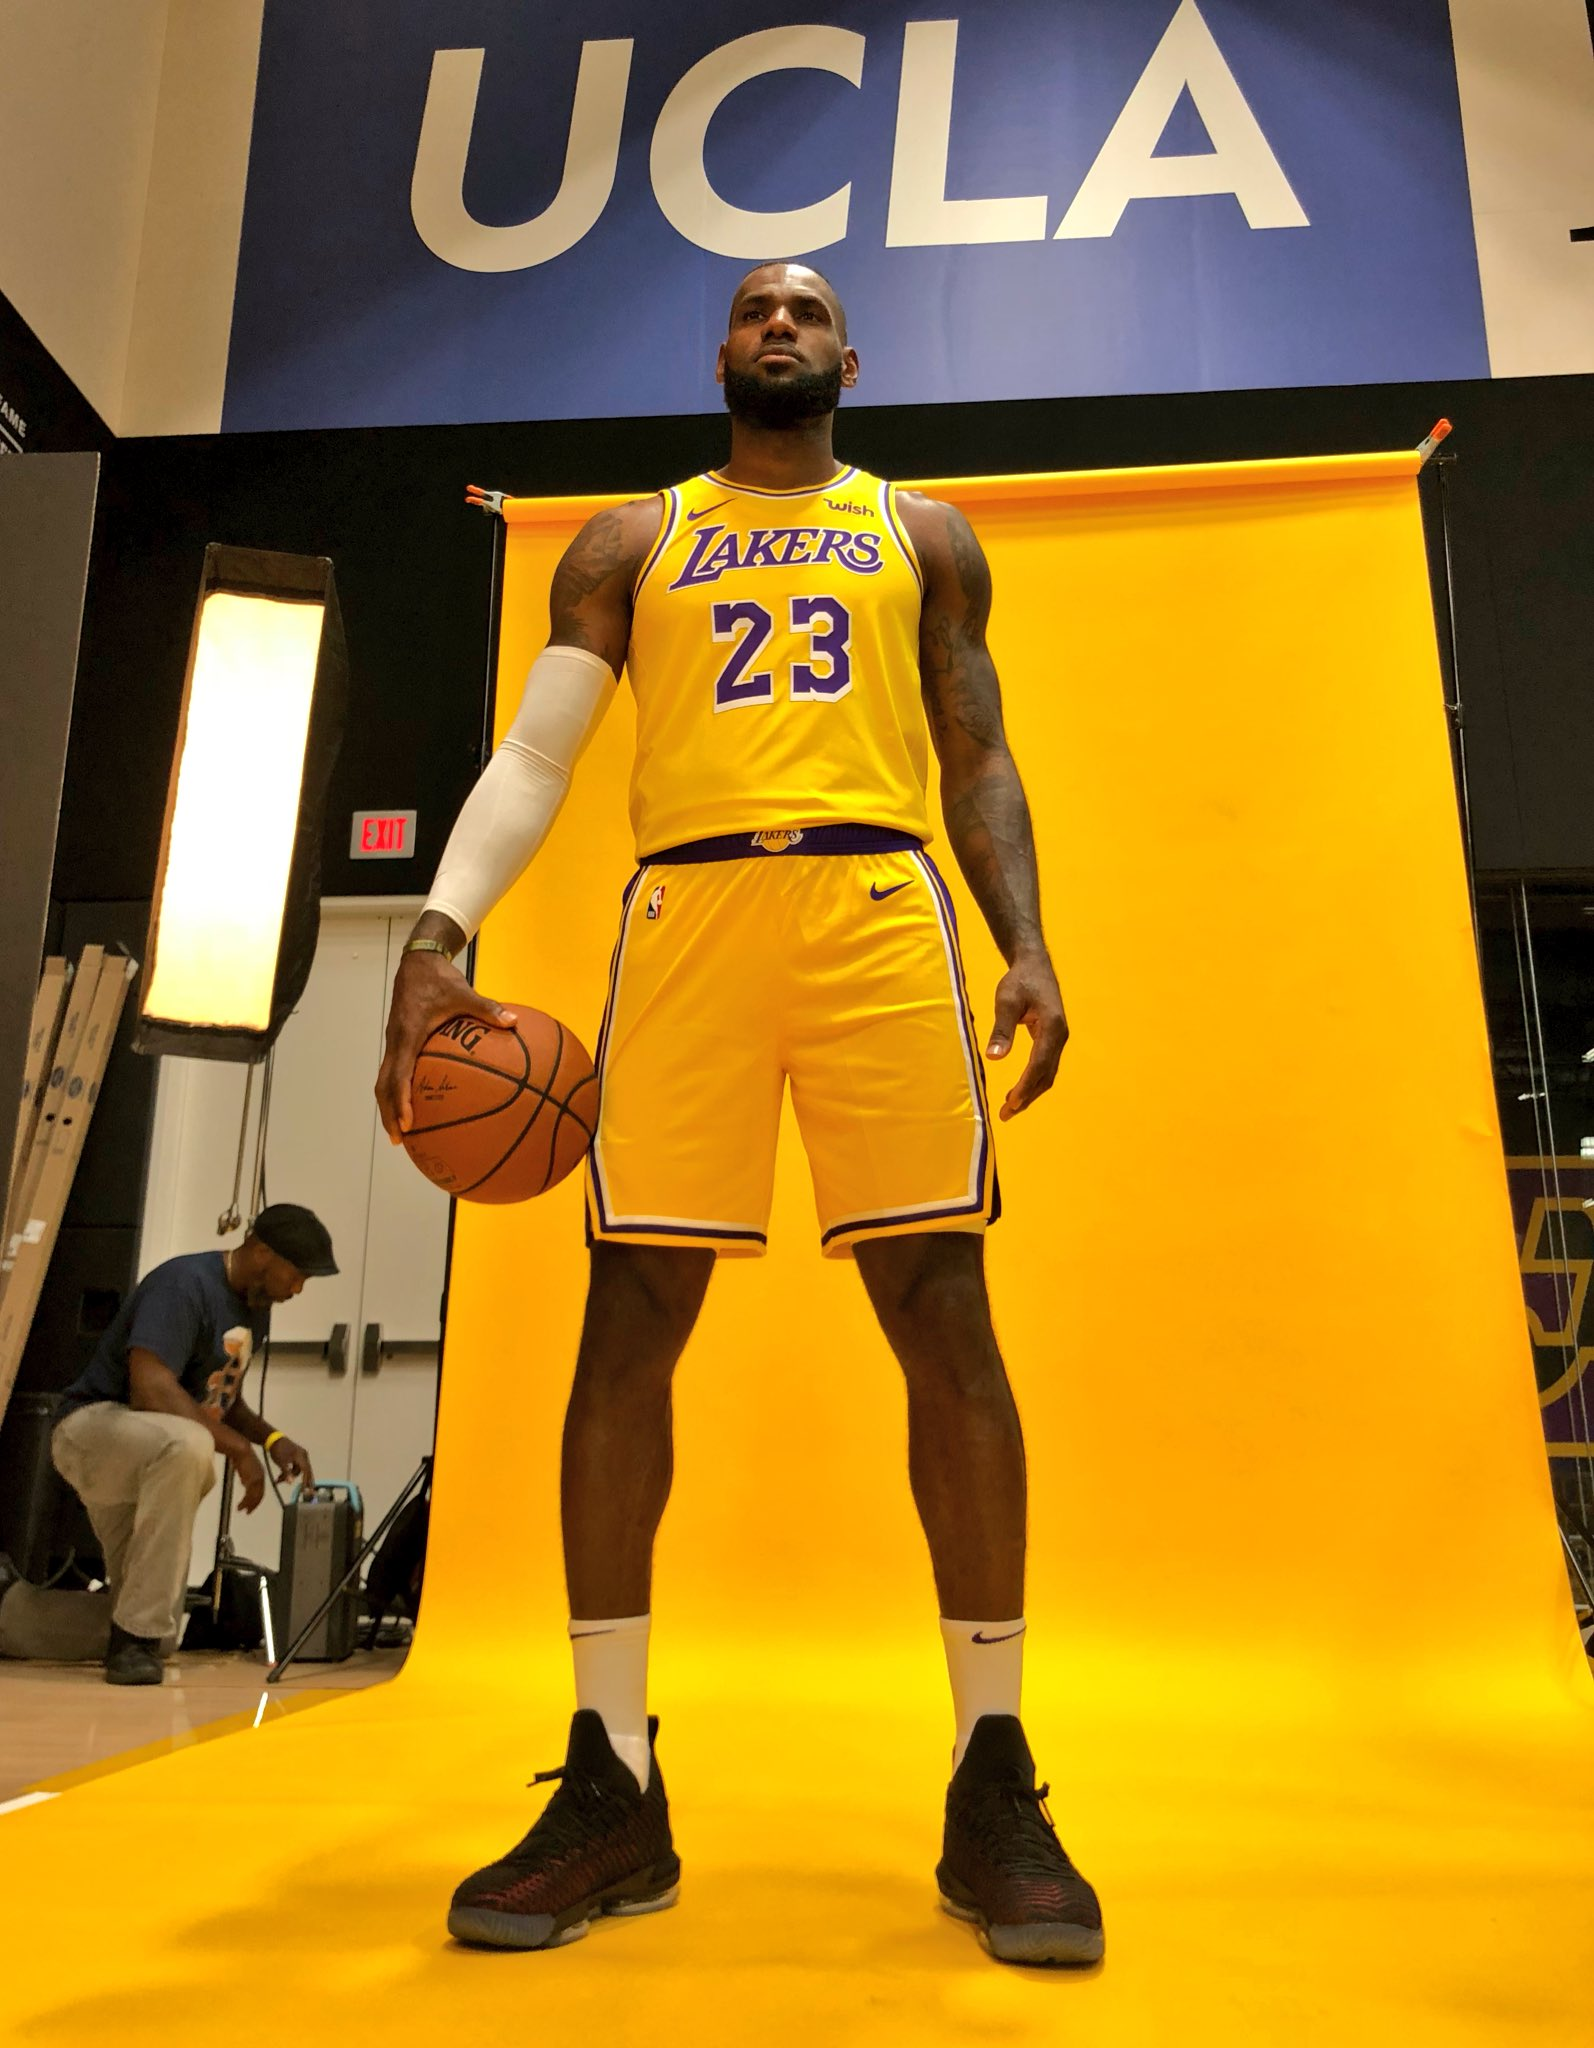 Standing tall at @Lakers Media Day! #NBAMediaDay https://t.co/ZpMHhuJIau